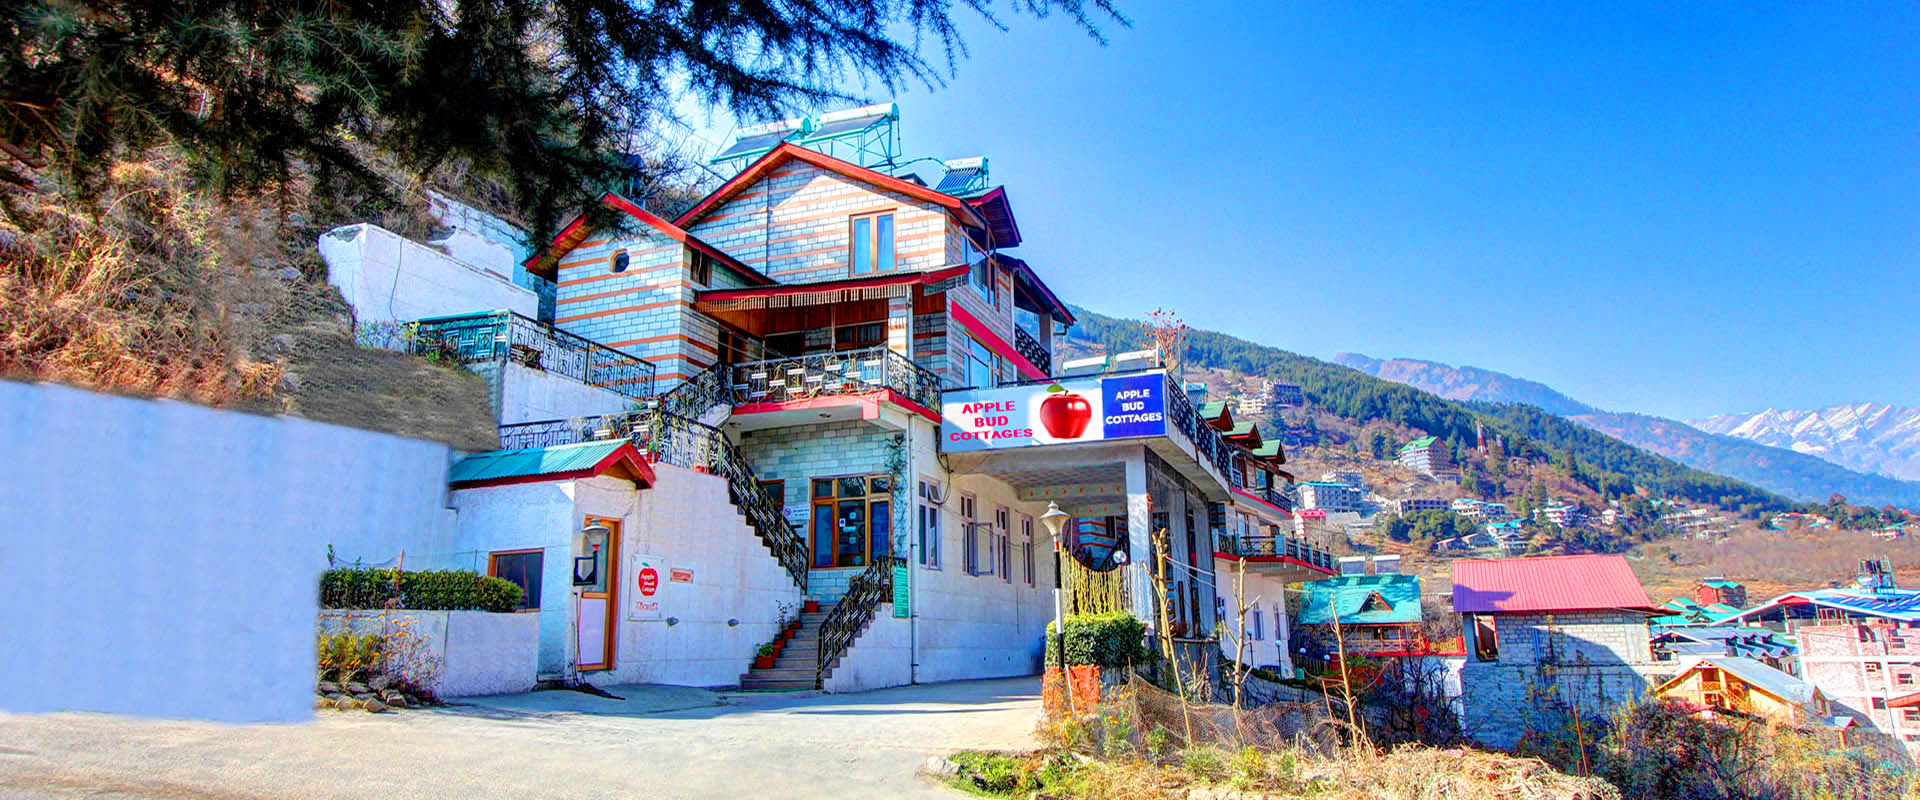 Apple Bud Cottages Manali - Best cottages in manali